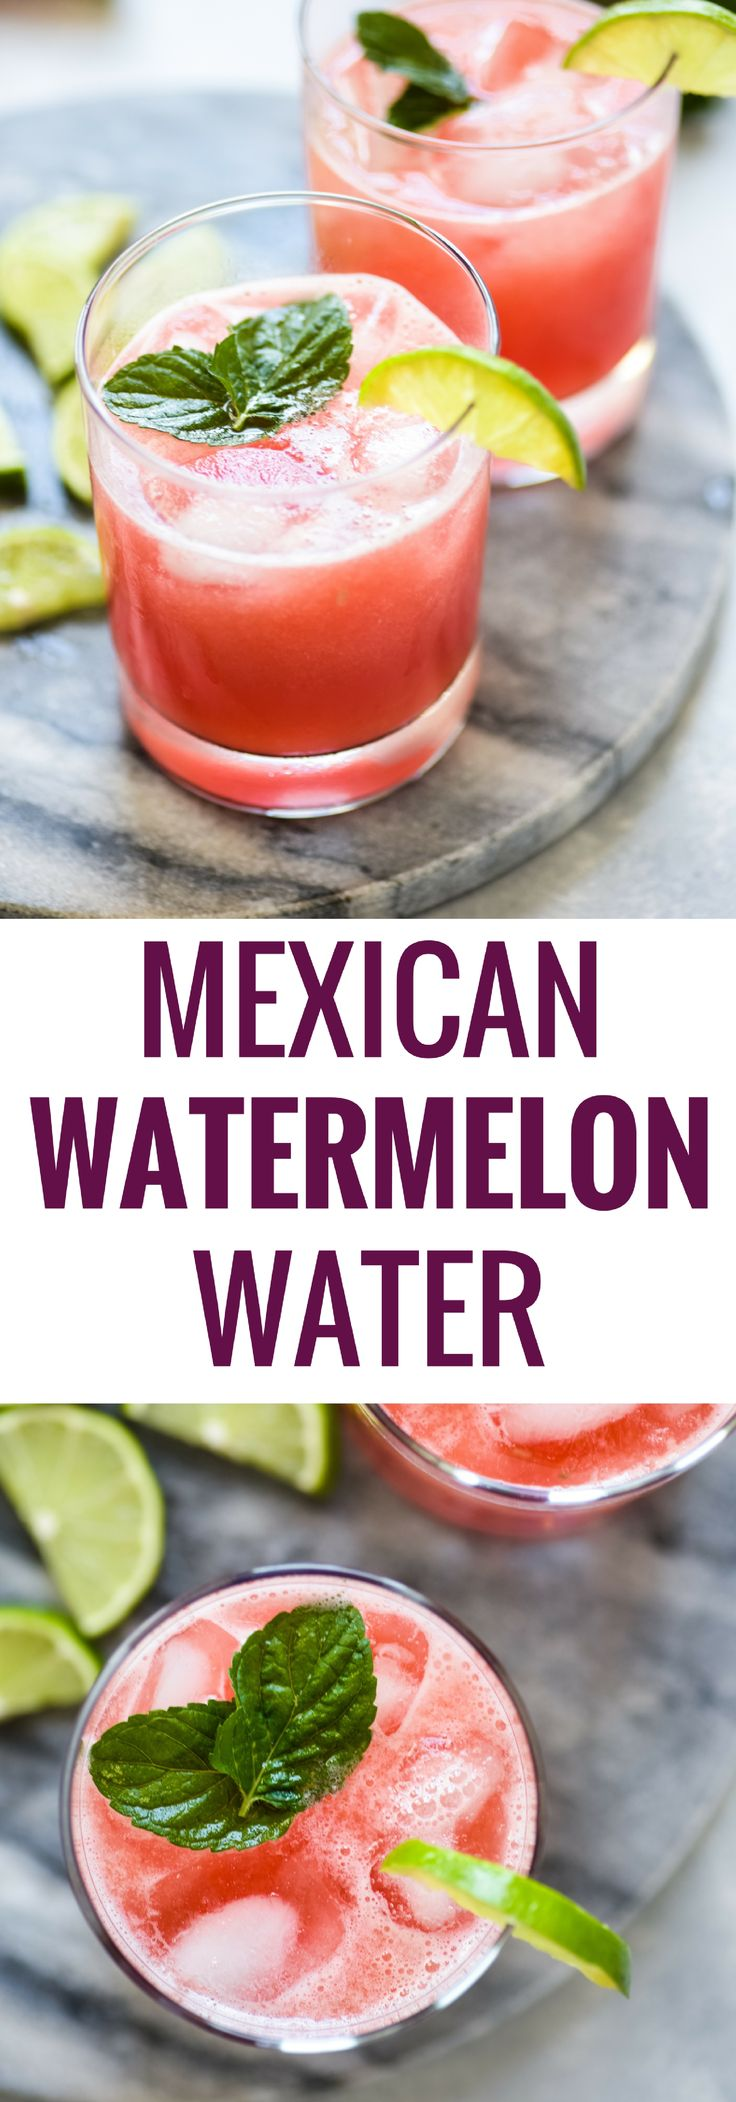 Made with only 3 ingredients, this Mexican Watermelon Water (Agua de Sandia) is a light and refreshing drink that's easy to make and low in calories. Add some vodka or tequila for a great summer cocktail!